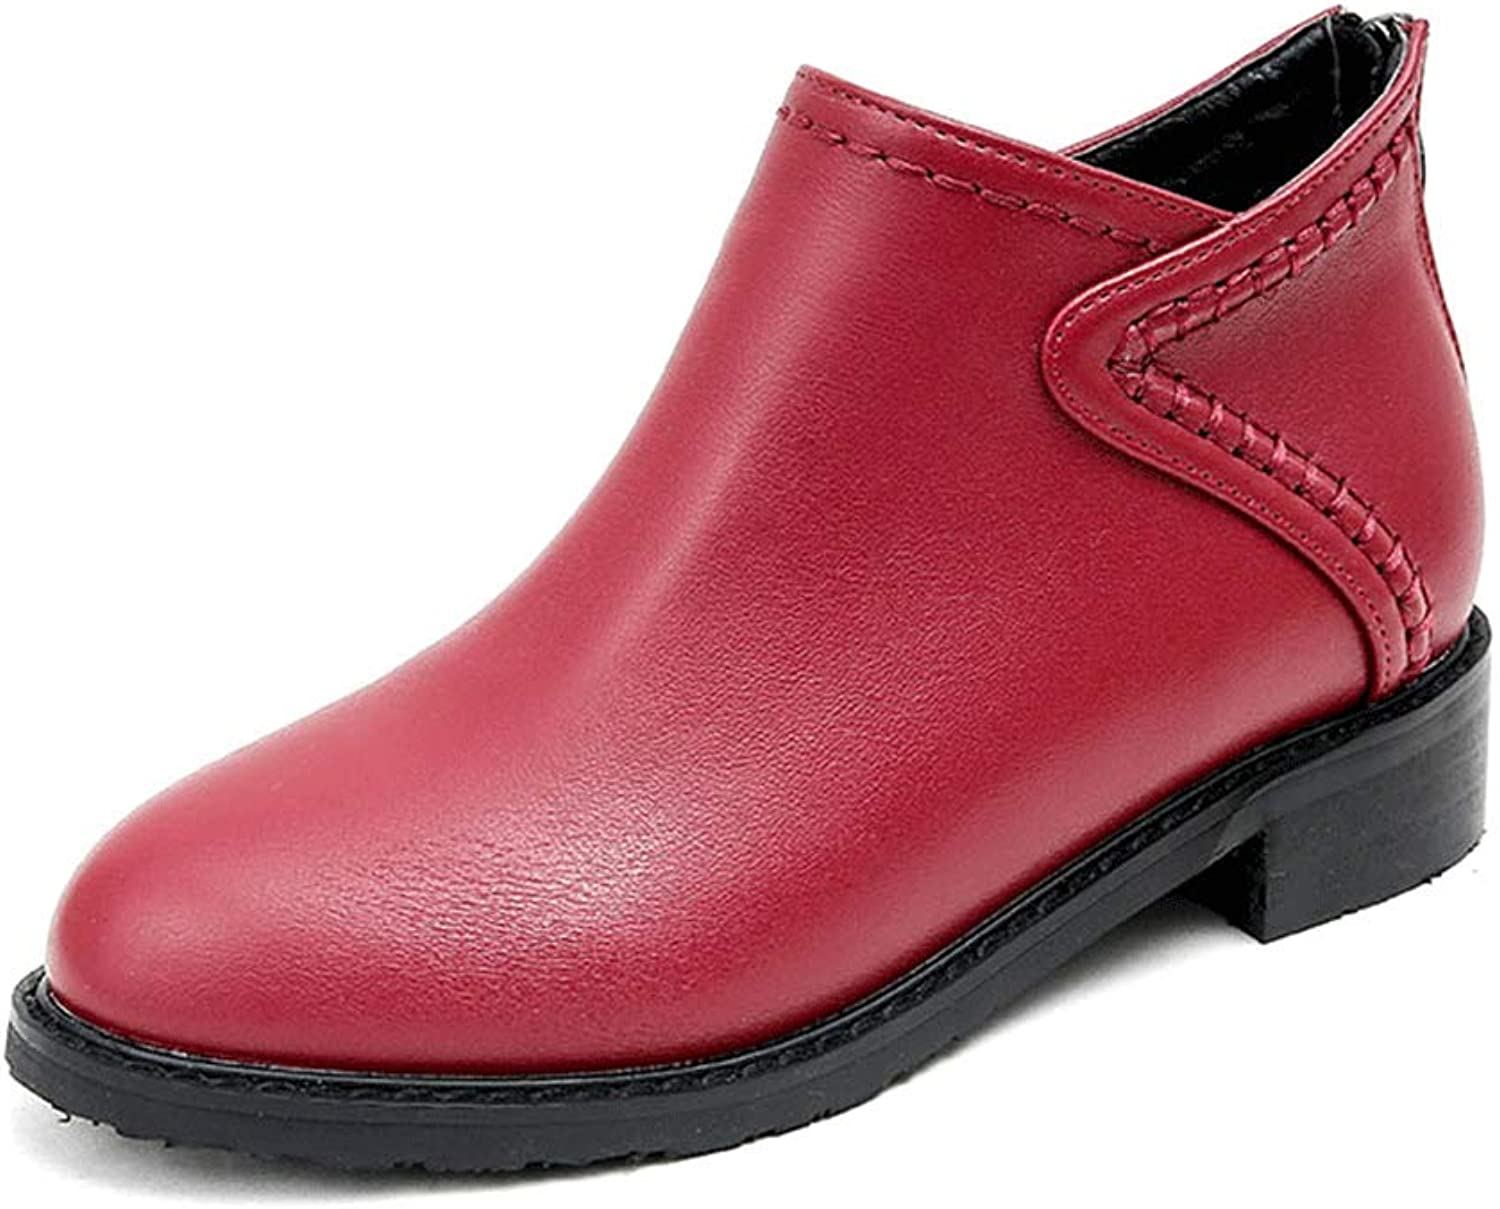 LIURUIJIA Women's Round Toe Ankle High Running-on Slip-on Boots DX6-918-26